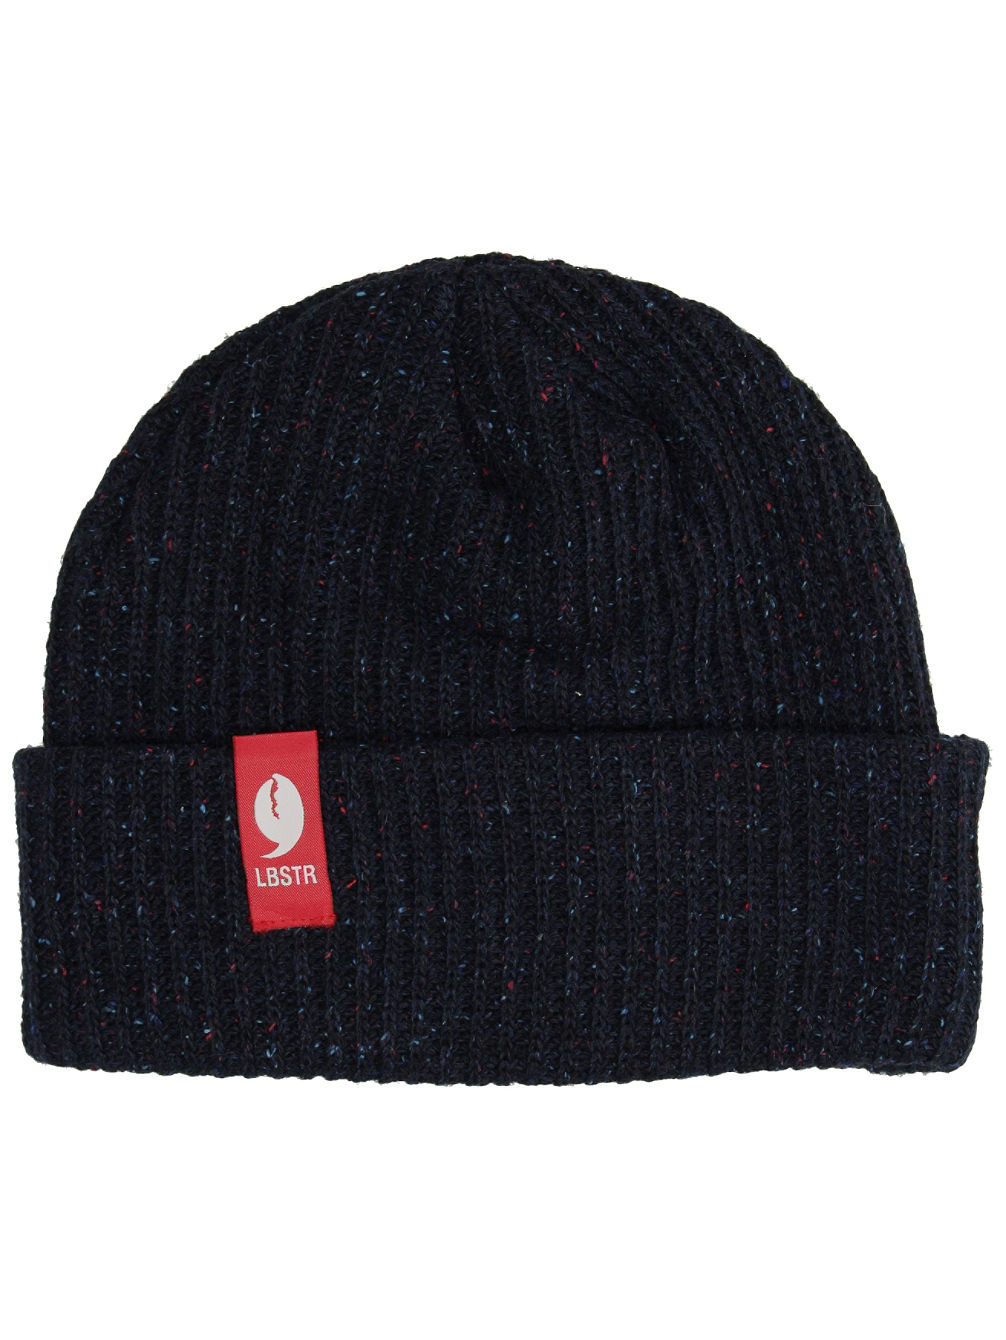 lbstr-apparel-albert-beanie